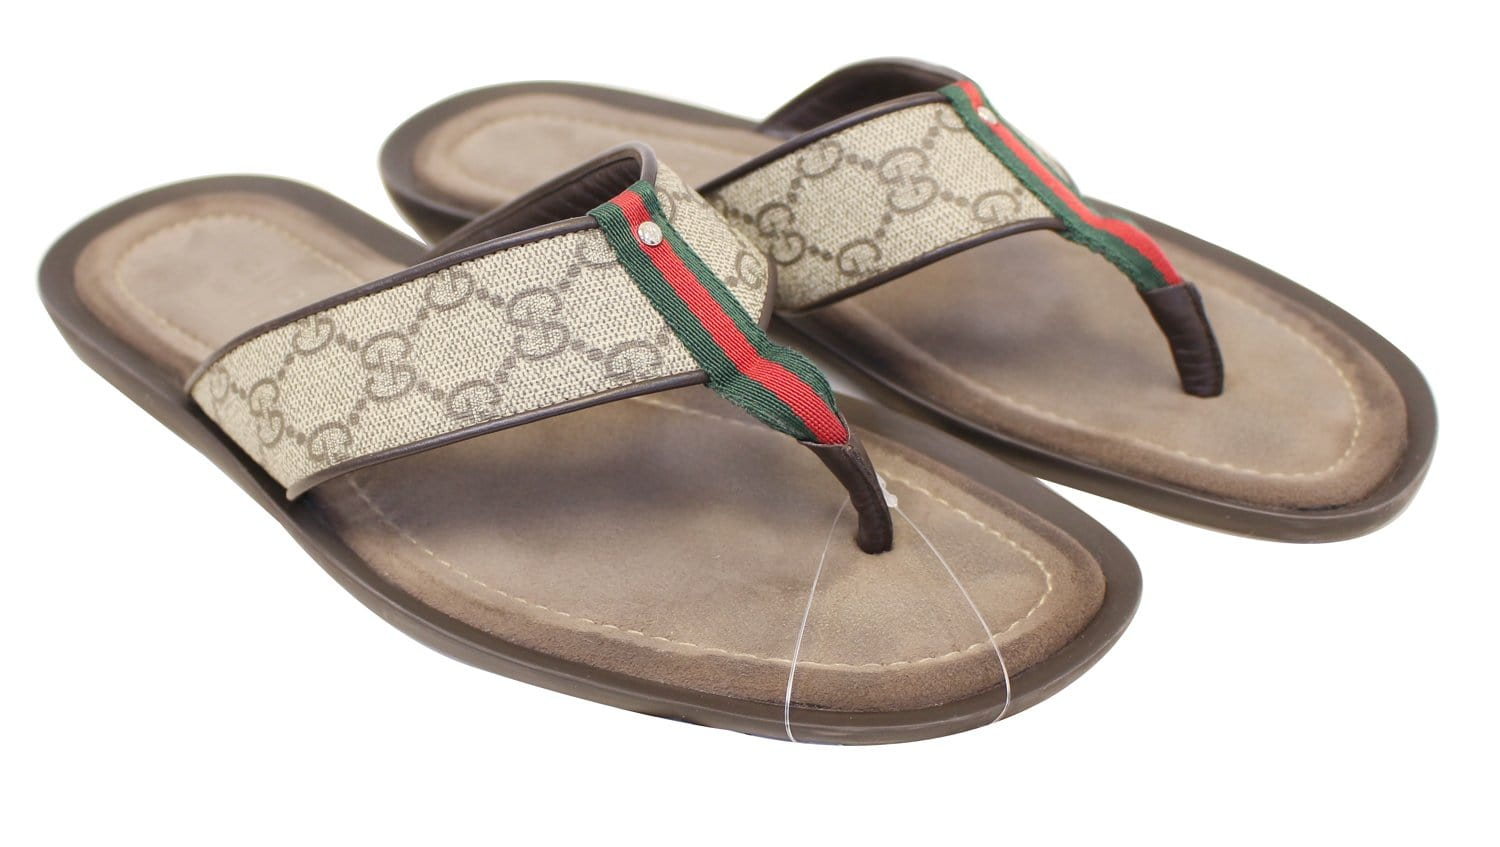 Gucci Mens Gg Supreme Canvas Flip Flops Sandals Size 8 12G-7264